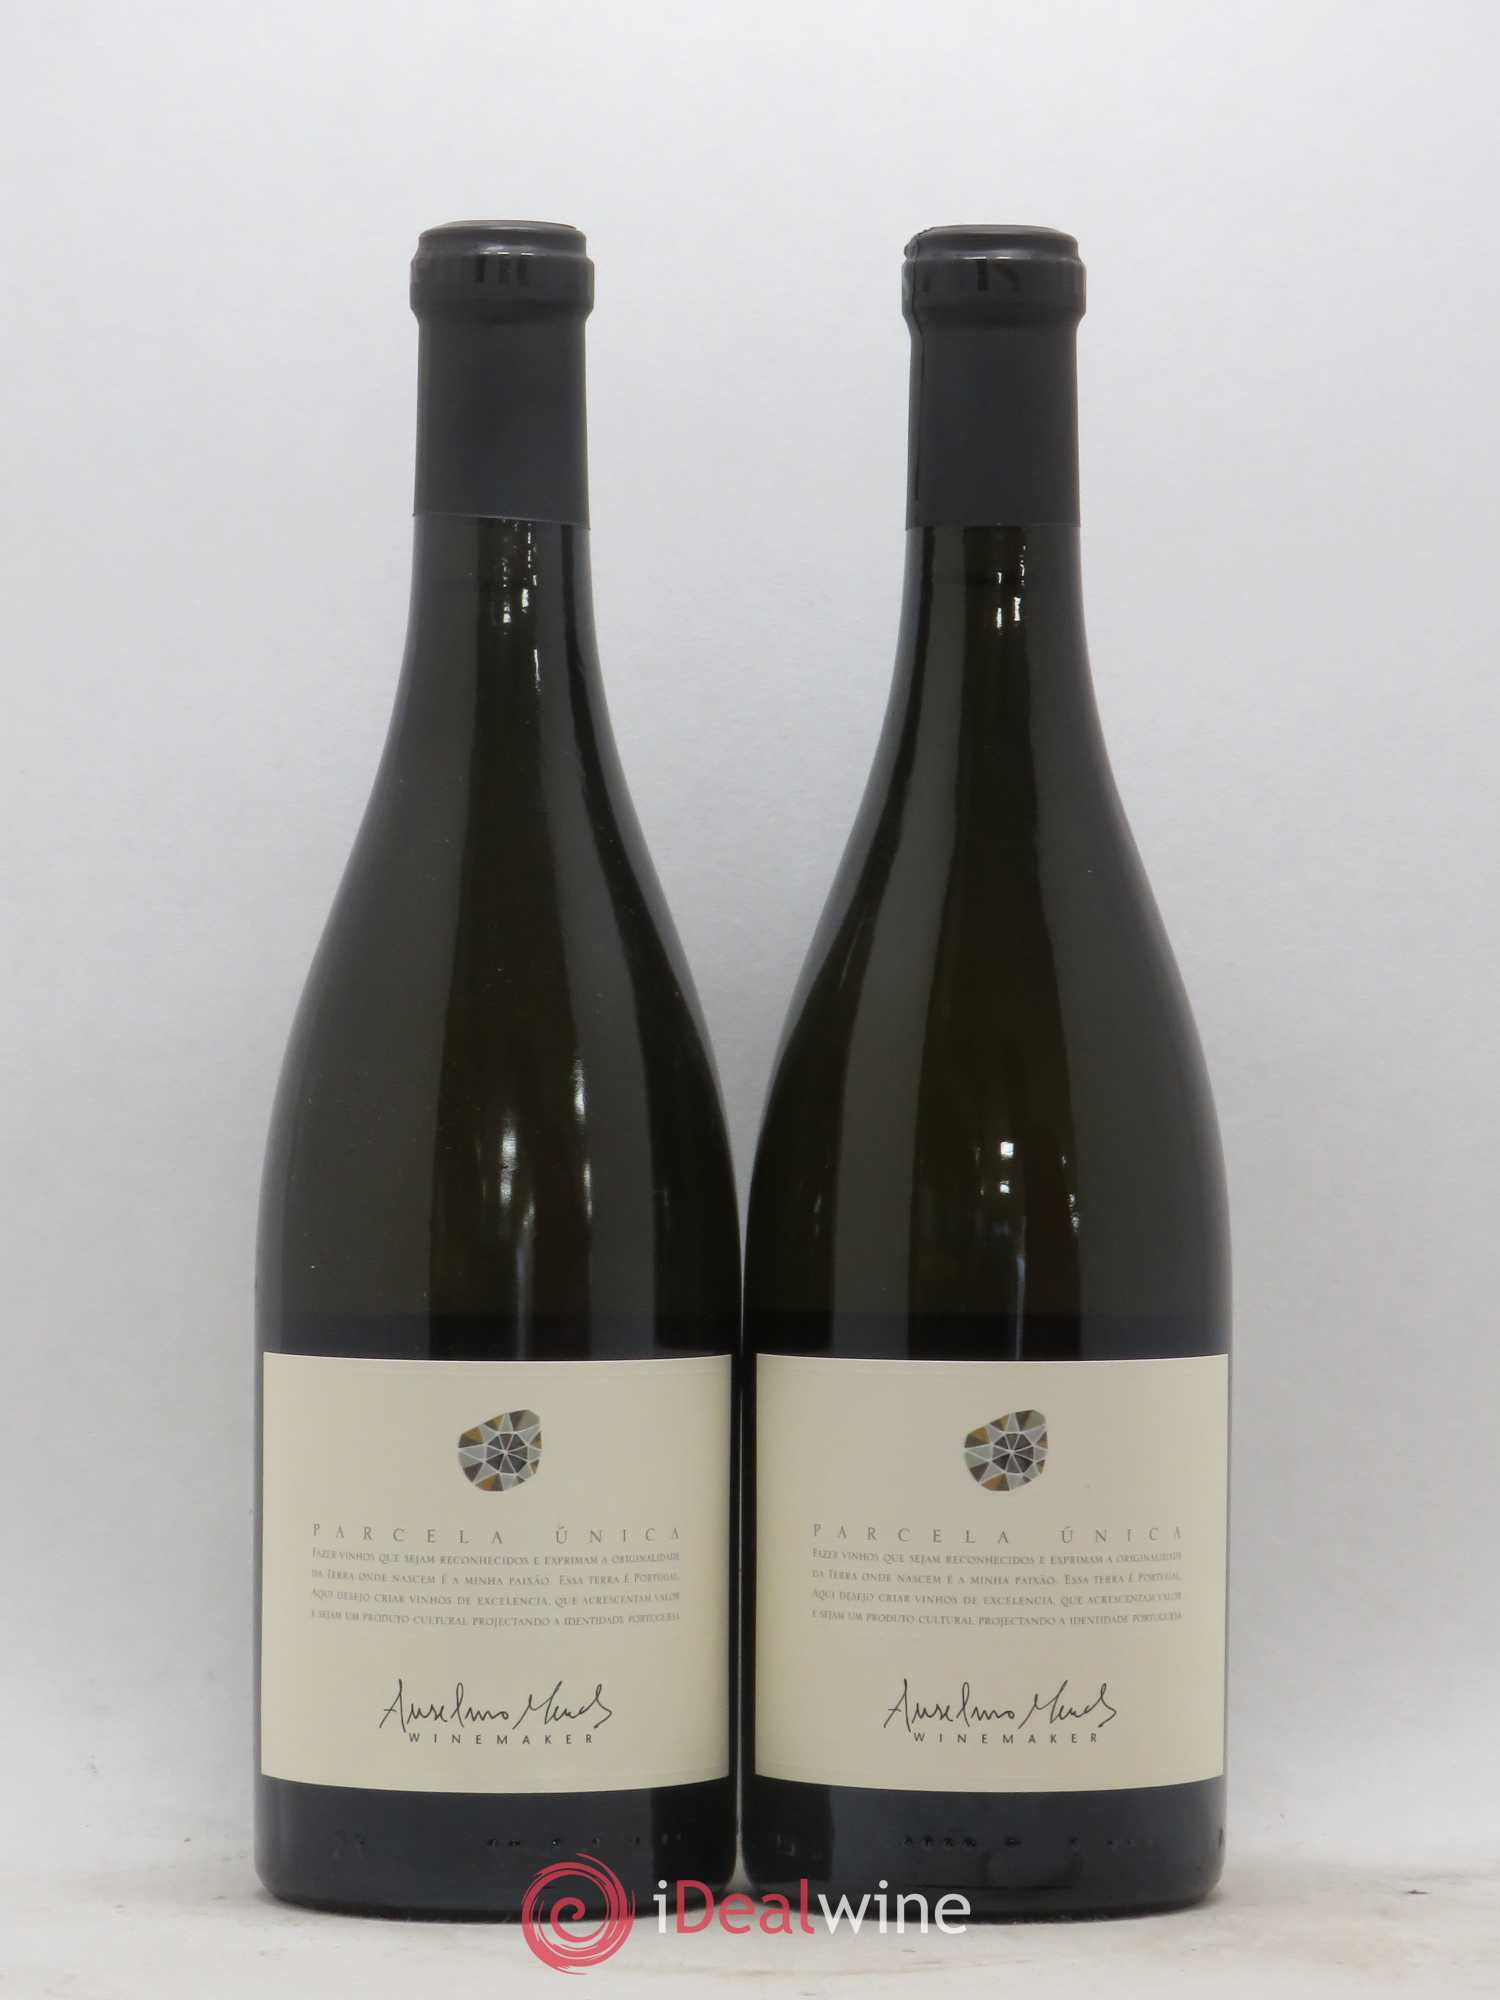 Portugal Vinho Verde Anselmo Mendes - Parcela Unica 2013 - Lot of 2 Bottles